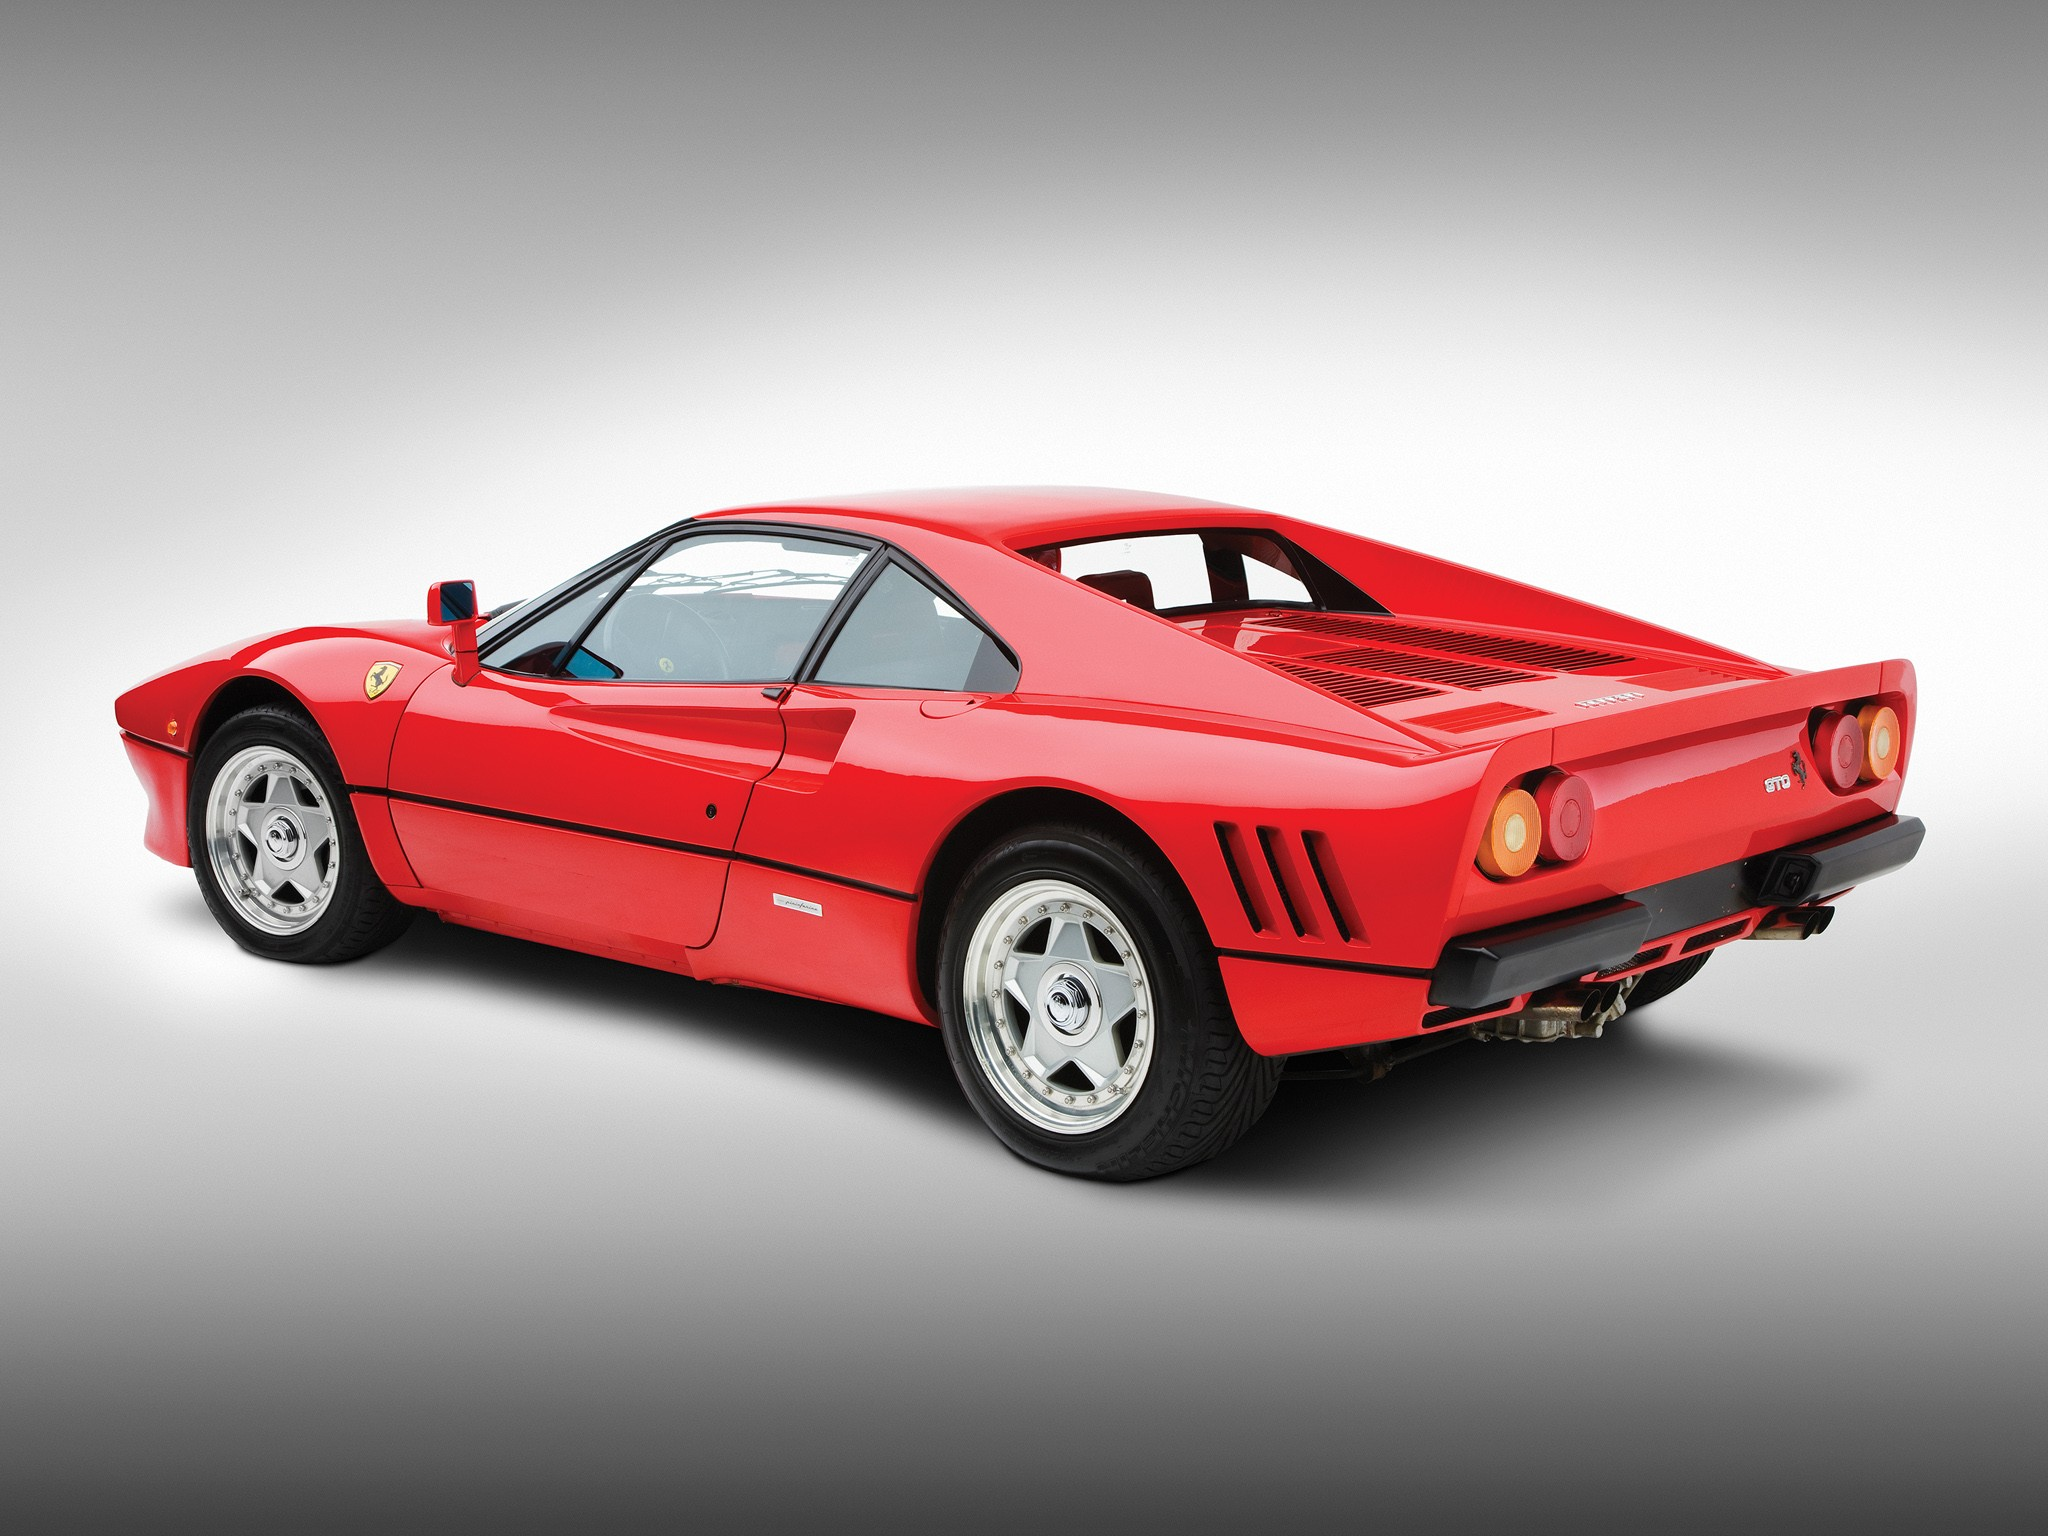 Acura Exotic Car >> FERRARI 288 GTO - 1984, 1985, 1986 - autoevolution